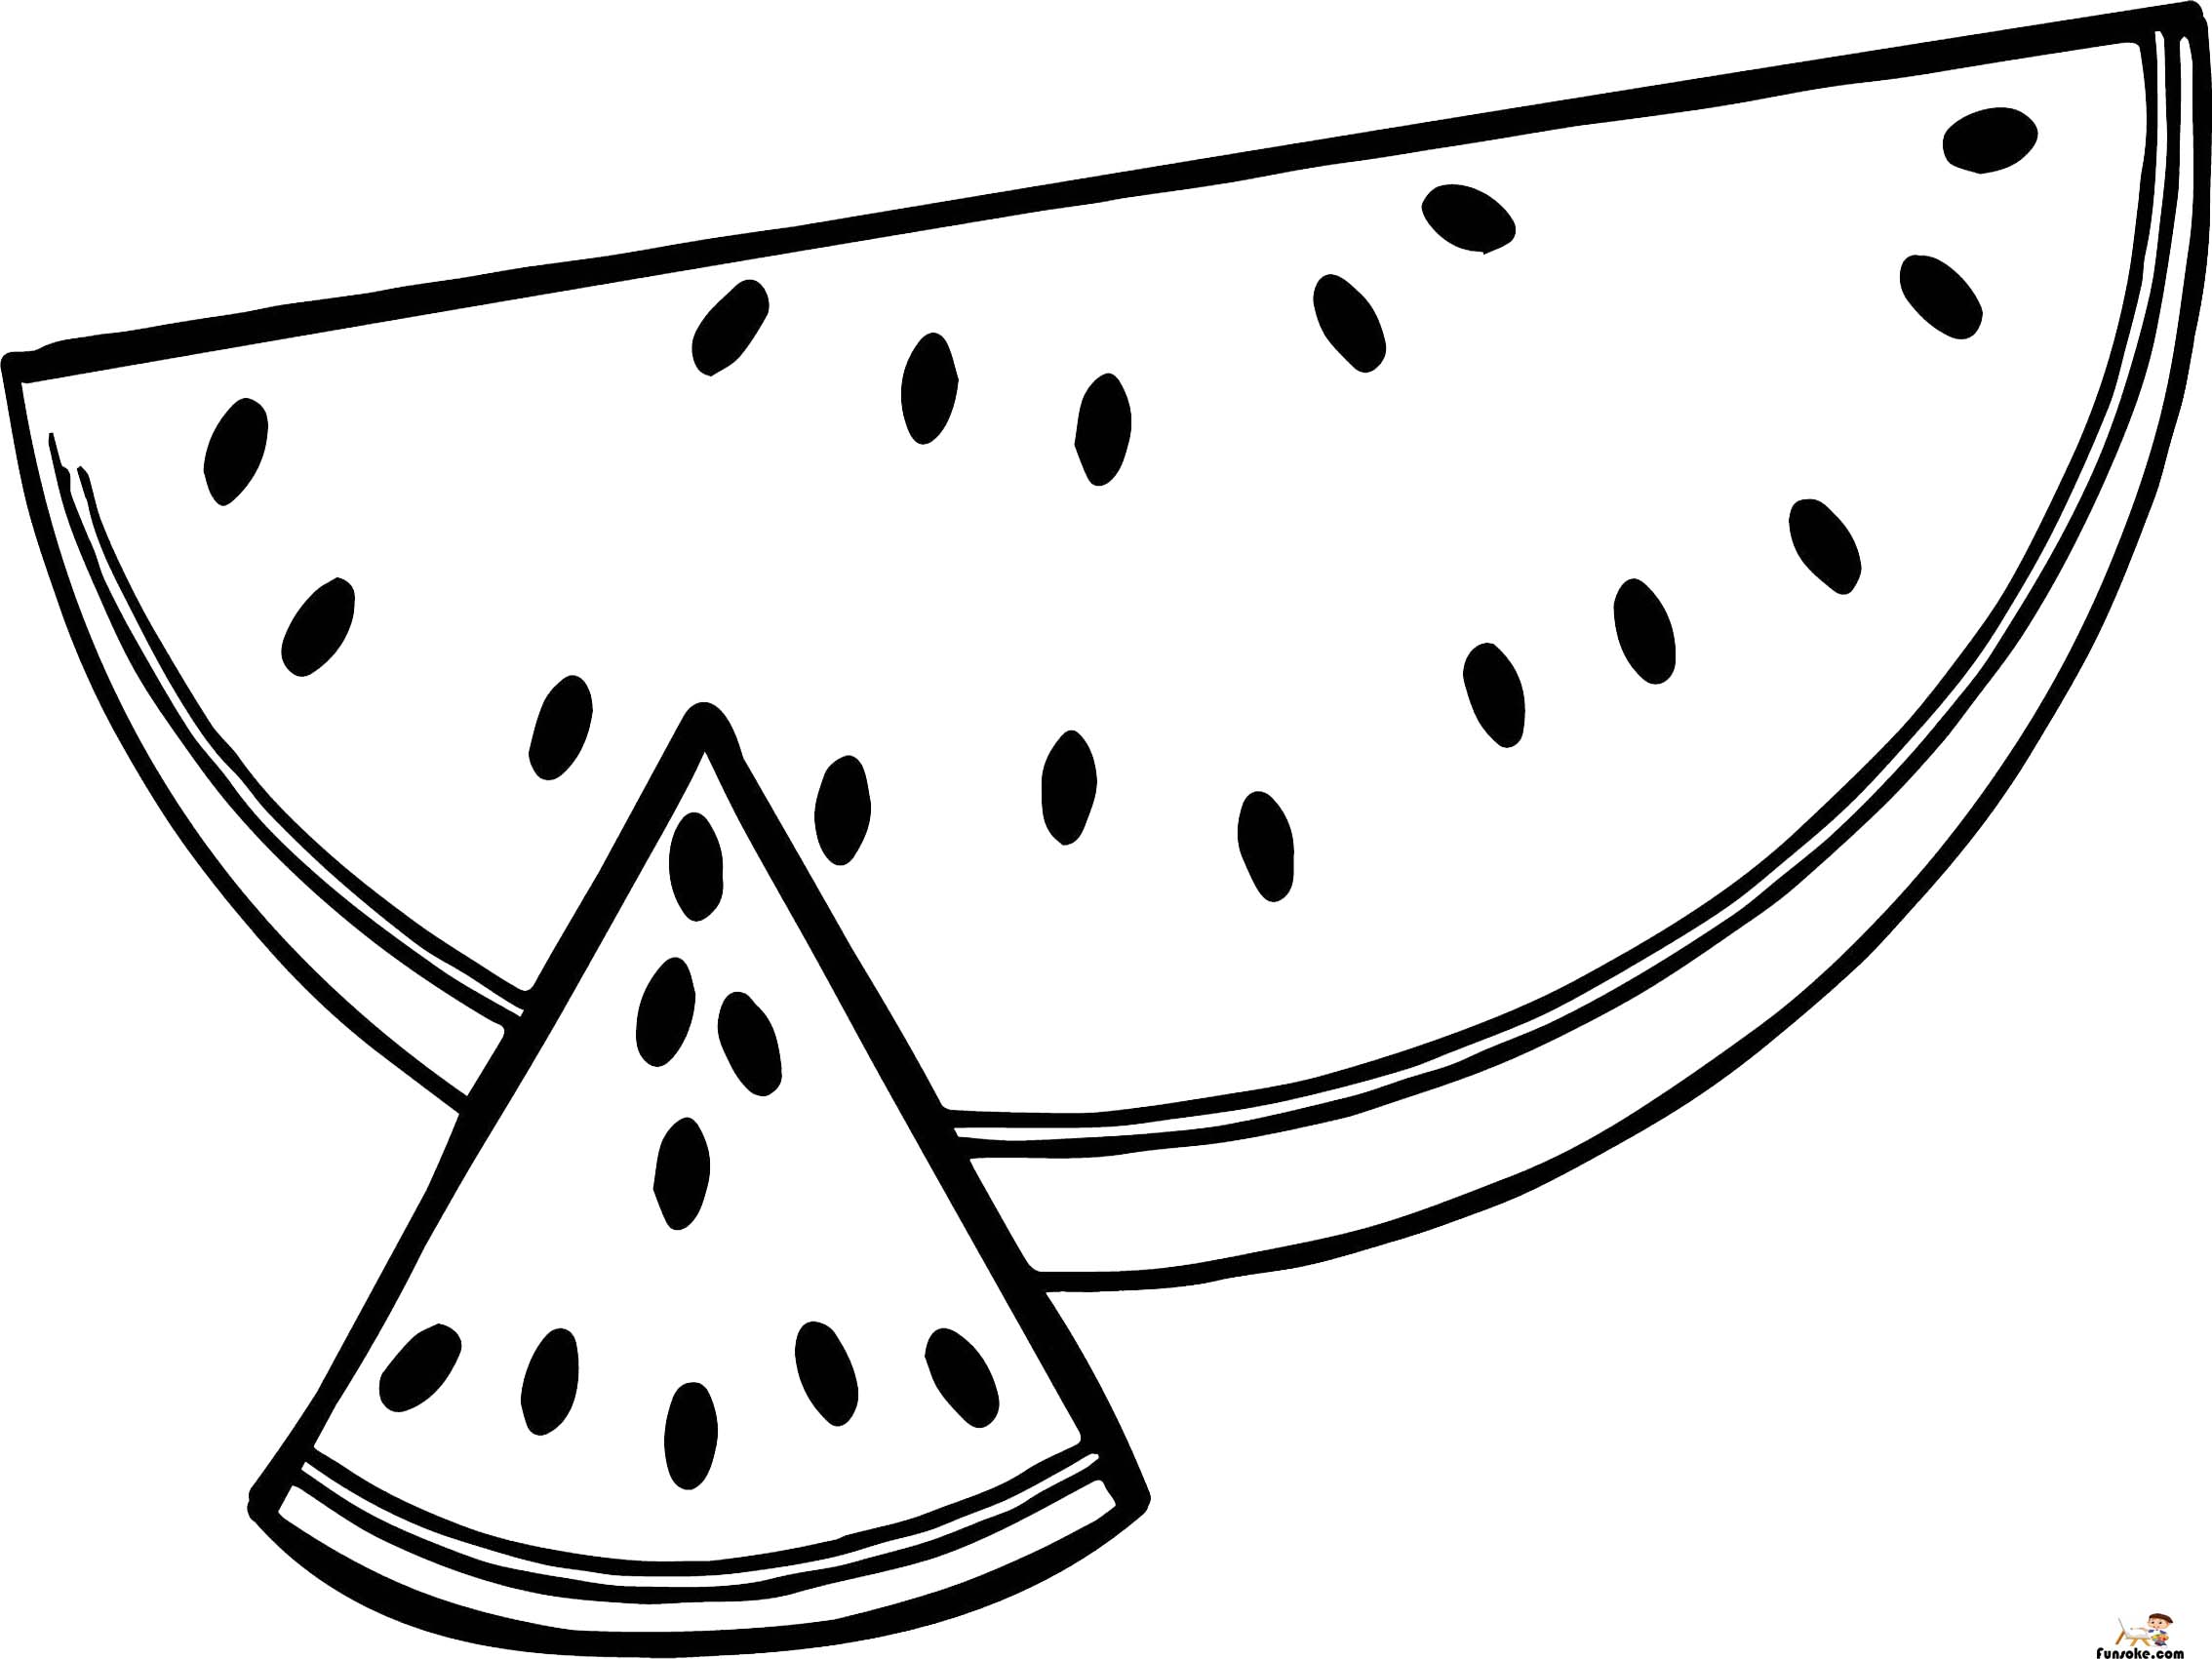 watermelon for coloring watermelon coloring pages preschoolers funsoke for coloring watermelon